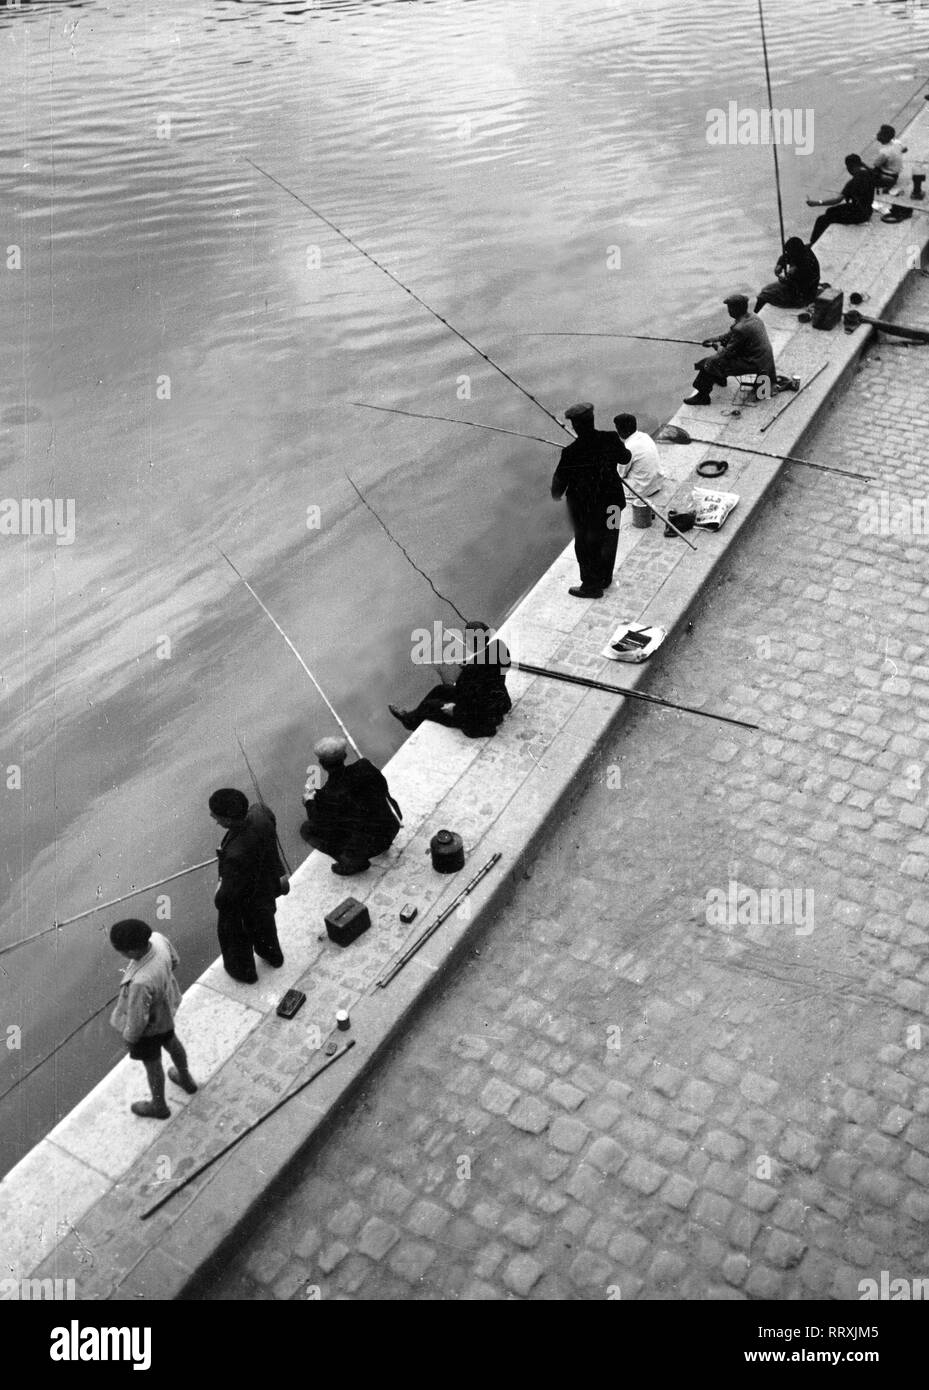 Frankreich - France in 1950s. Angler in Paris on the Seine riverside. Photo by Erich Andres Frankreich, Paris, Angler an der Seine. - Stock Image